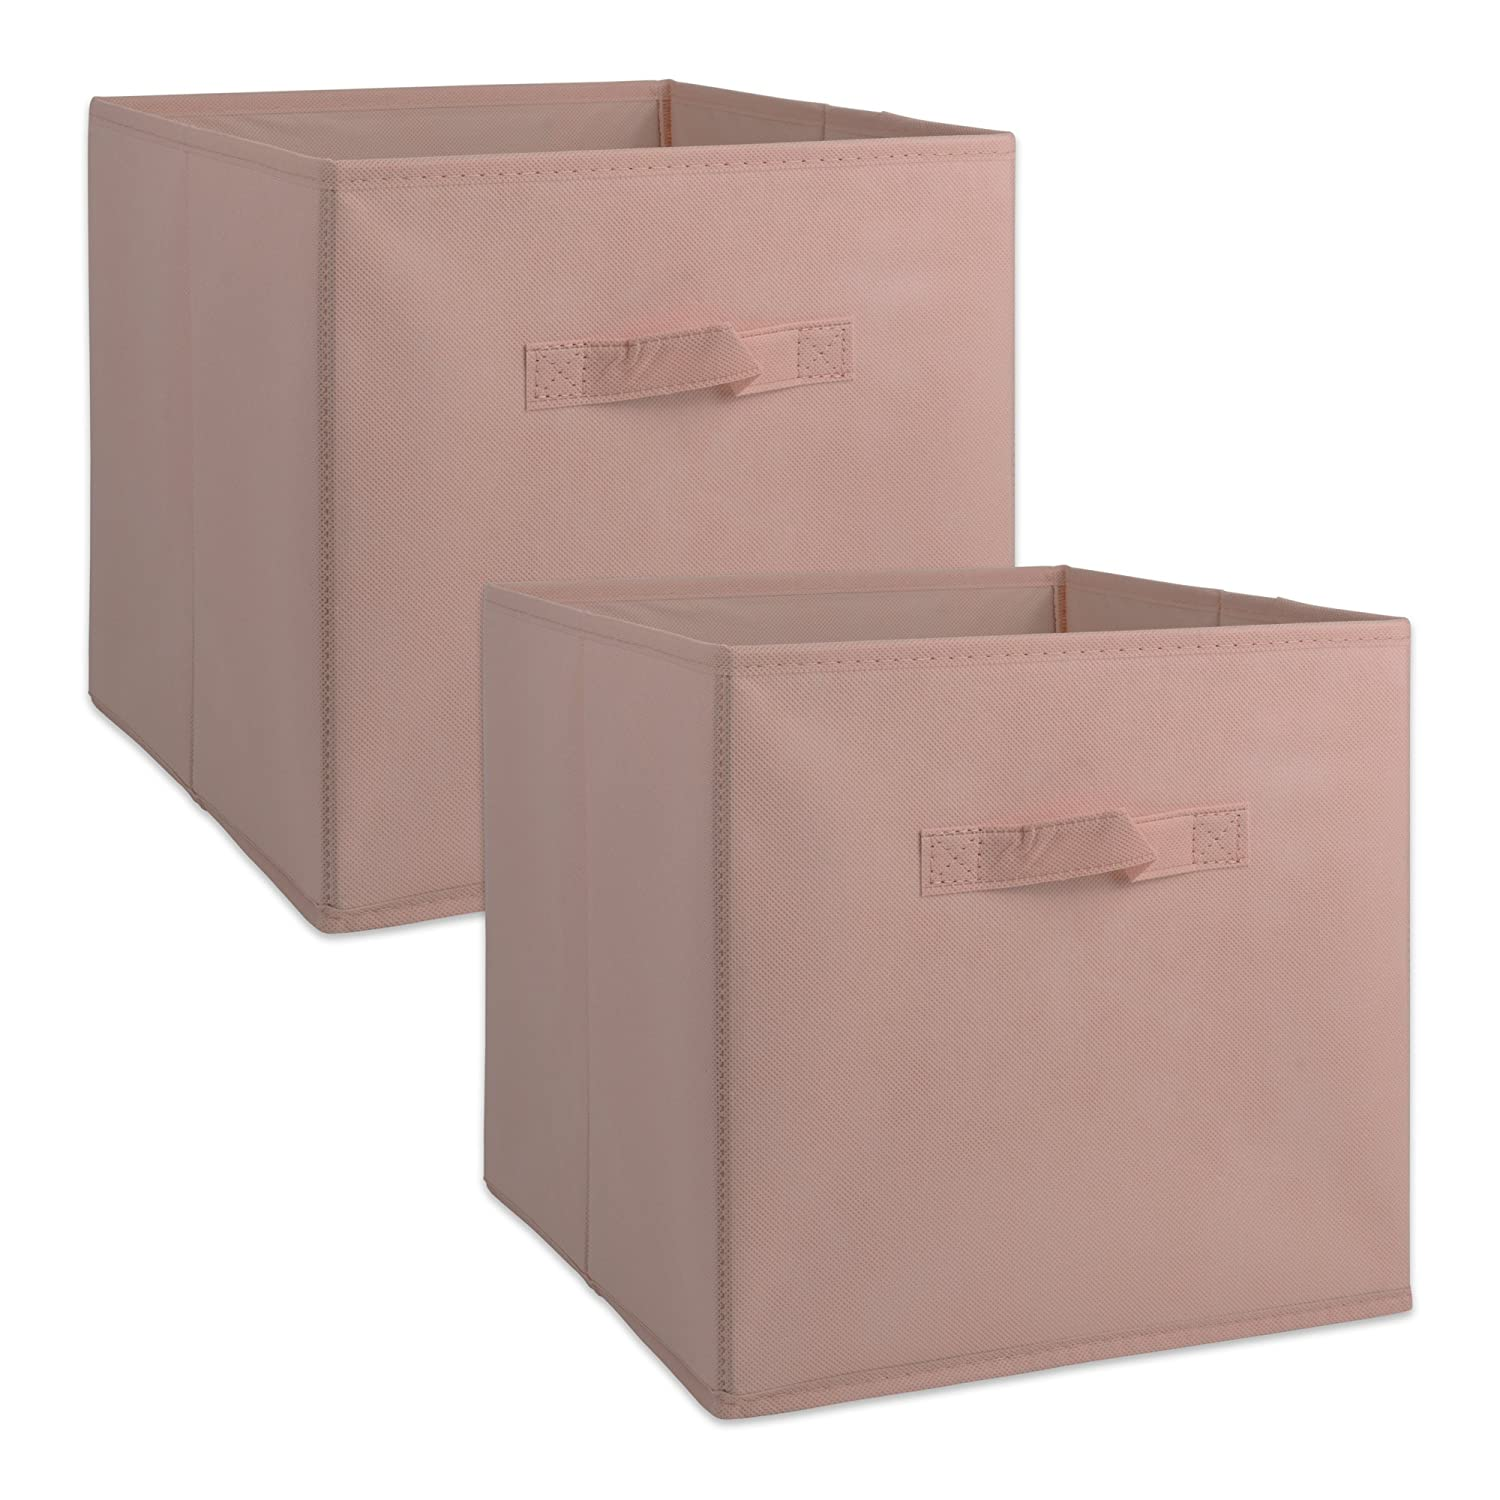 """DII Fabric Storage Bins for Nursery, Offices, & Home Organization, Containers Are Made To Fit Standard Cube Organizers(13x13x13"""") Pink - Set of 2"""